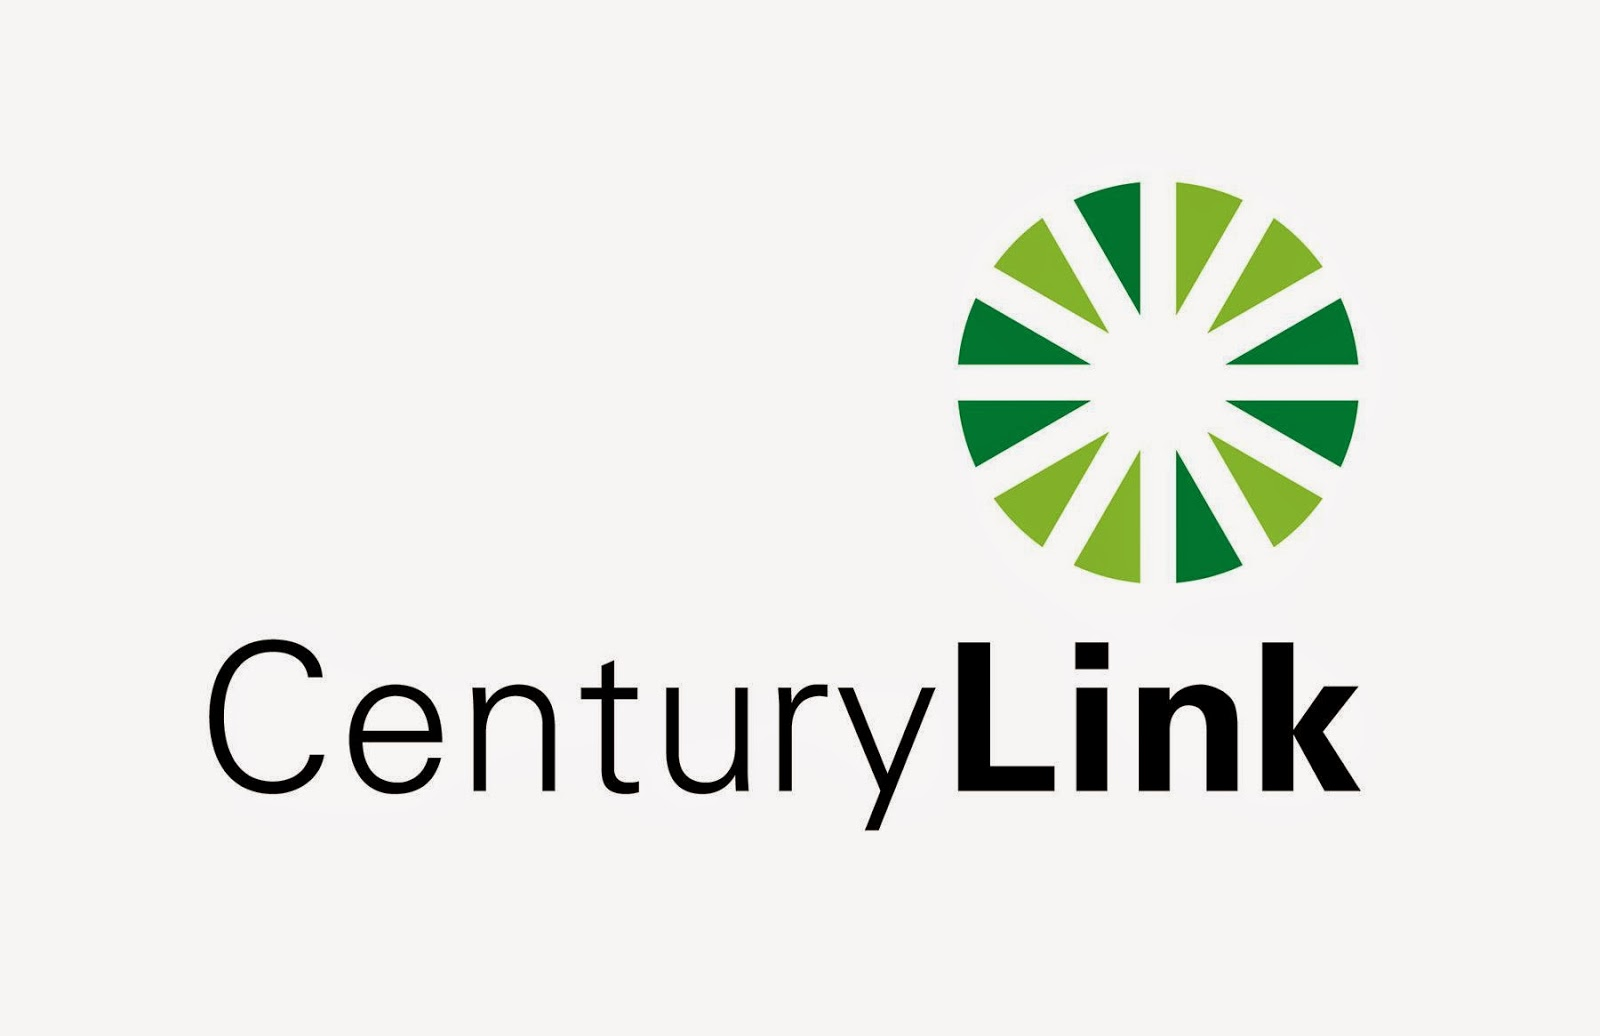 CenturyLink Customer Service Phone Number, Complaint, Toll Free Number